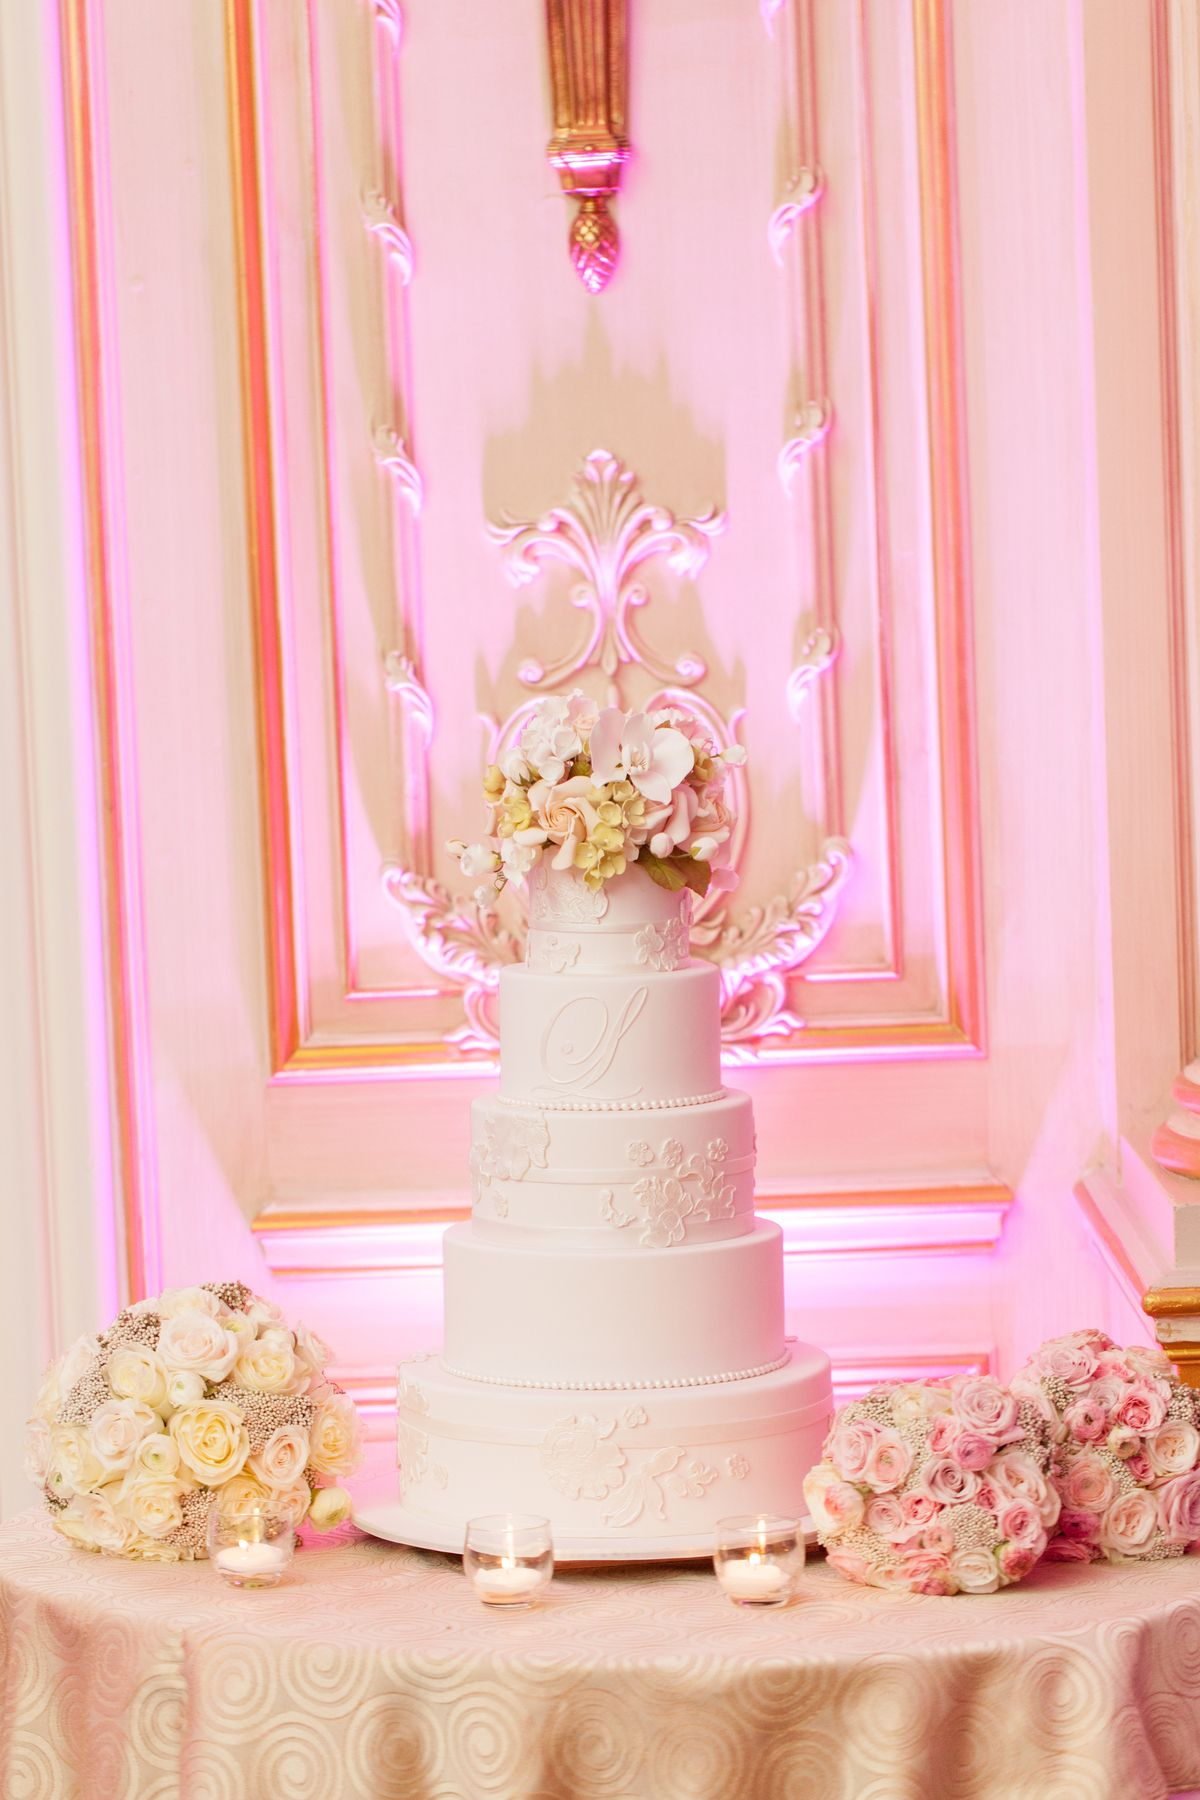 Interview With Ron BenIsrael Of RBI Cakes By Bride Blossom - Ben Israel Wedding Cakes